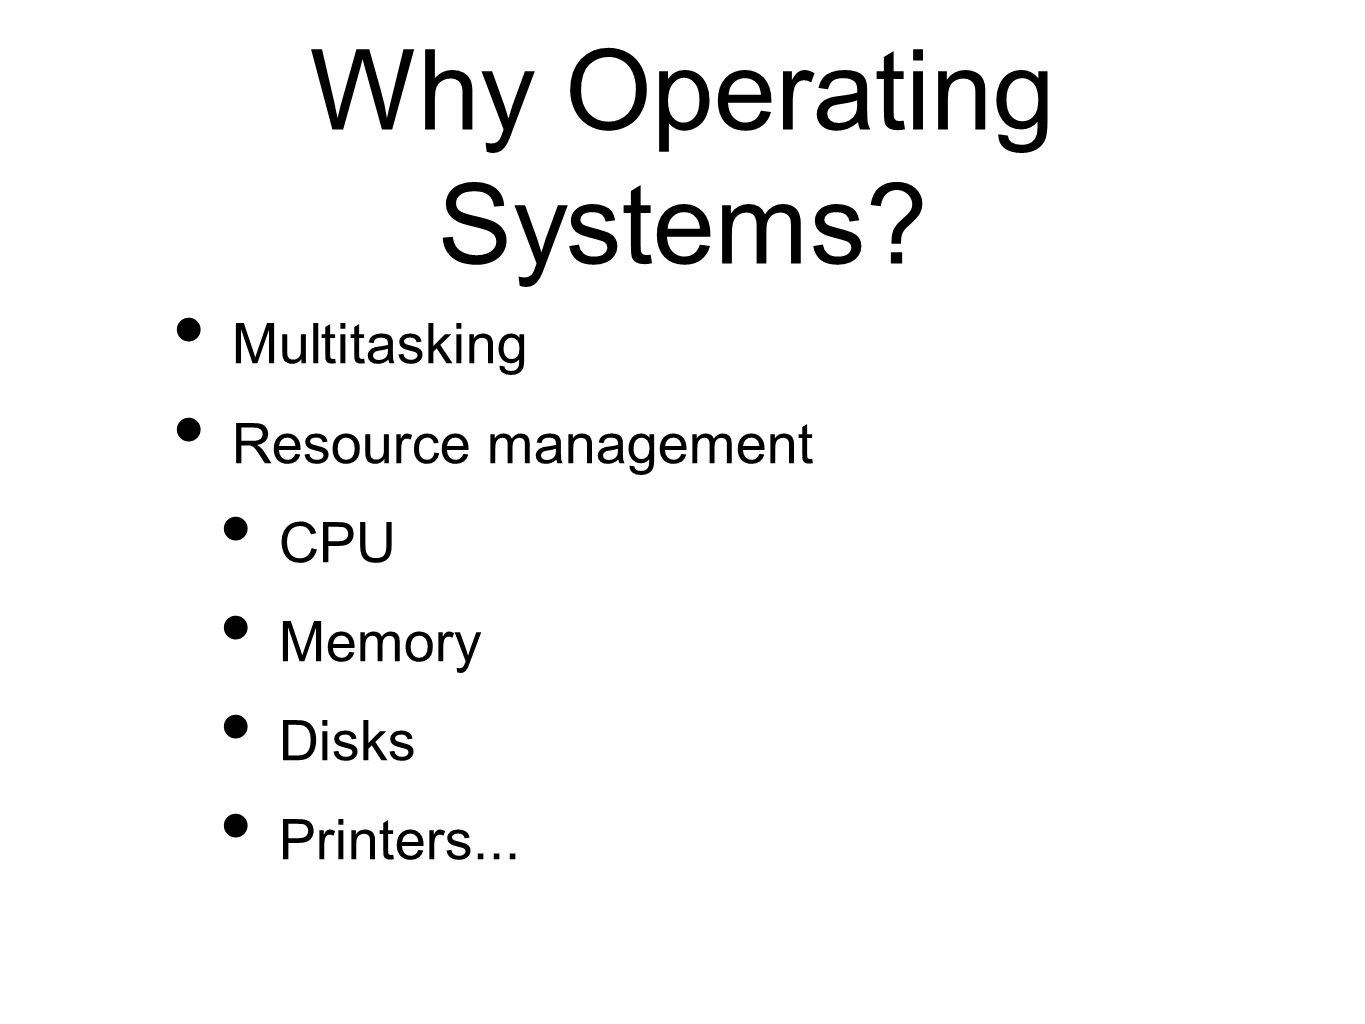 Why Operating Systems Multitasking Resource management CPU Memory Disks Printers...